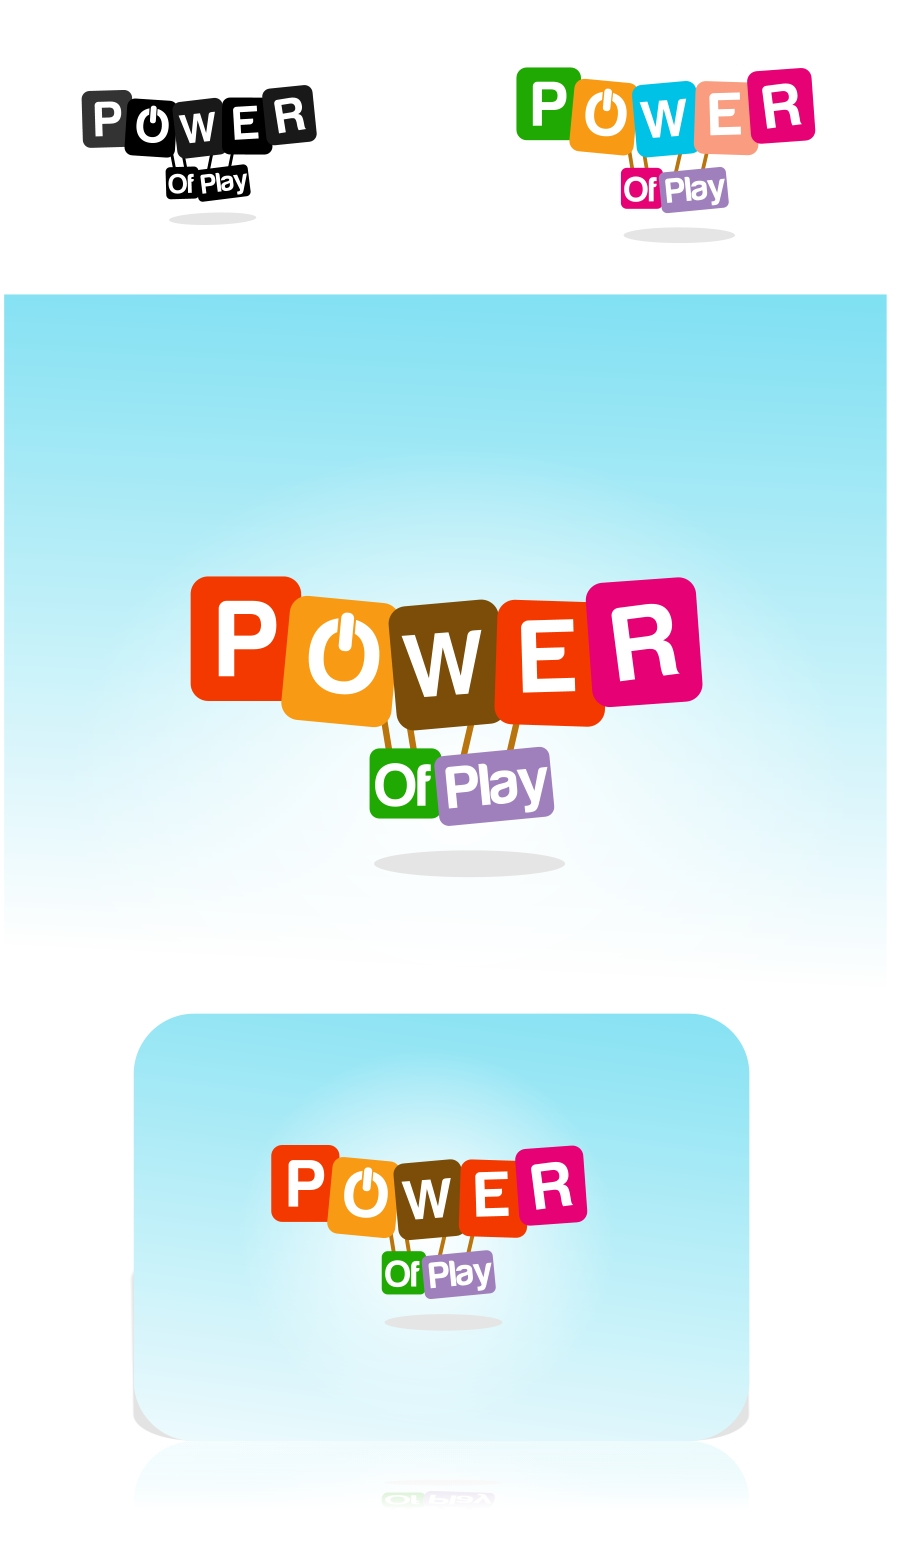 Logo Design by Private User - Entry No. 75 in the Logo Design Contest Power Of Play Logo Design.